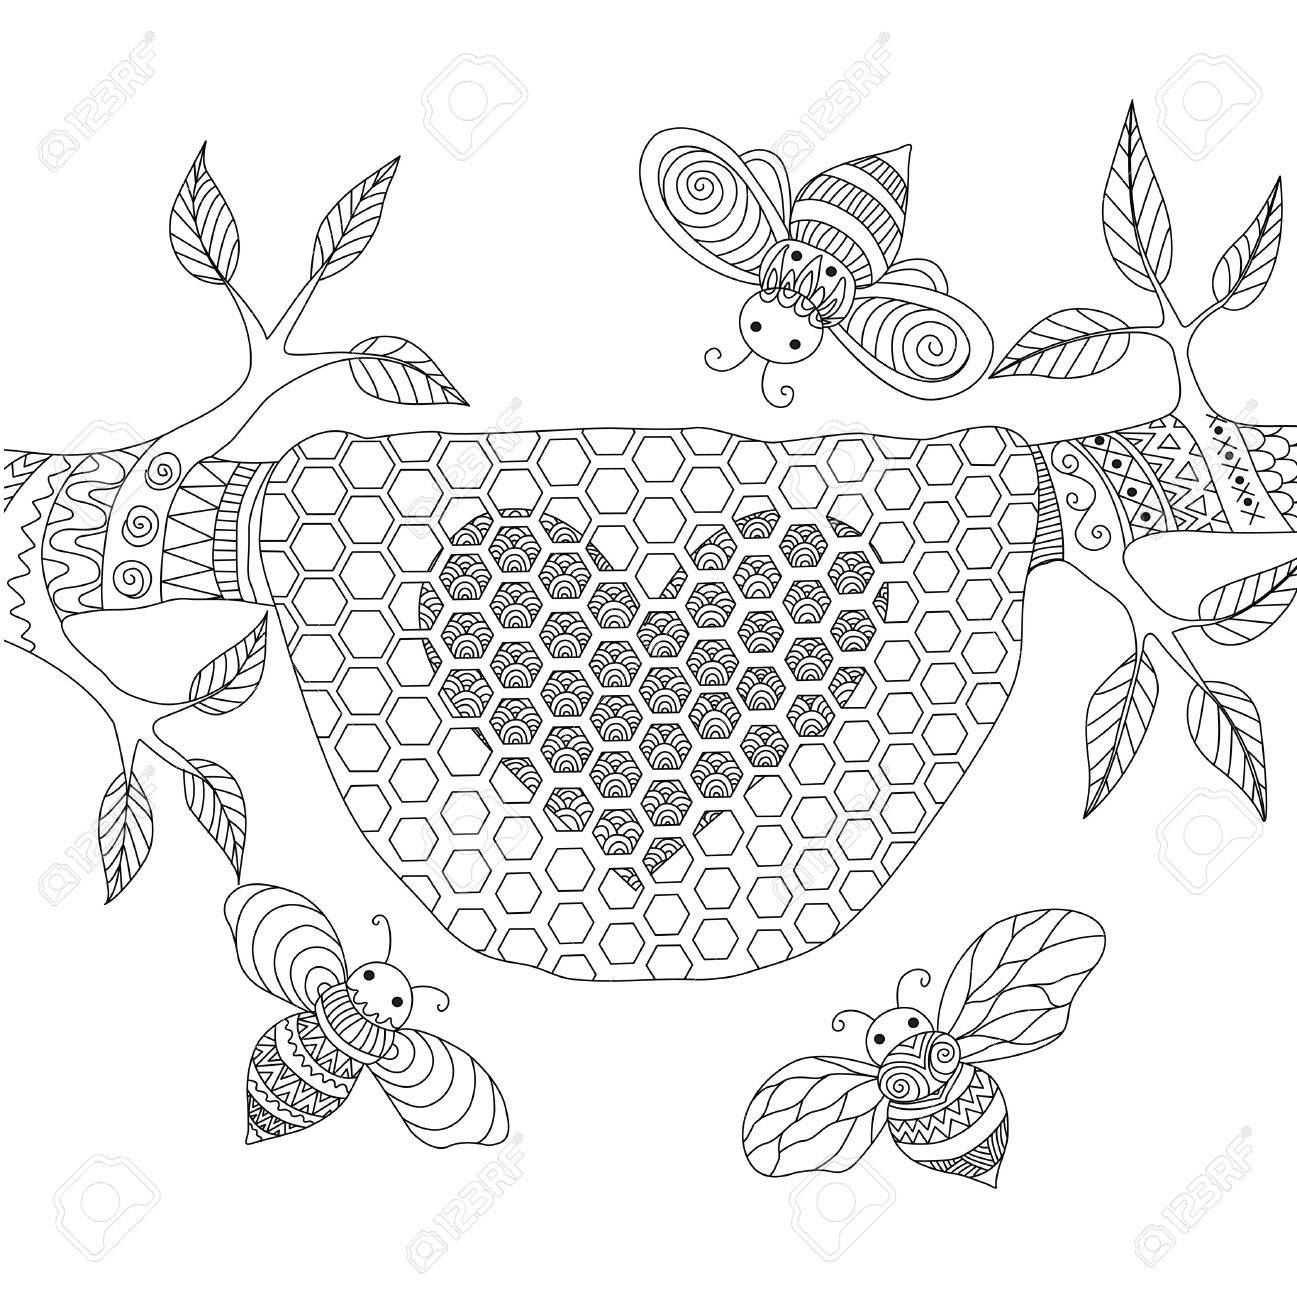 Line Art Design Of Honey Bees Flying Around Beehive For Coloring Pages Adult Stock Vector